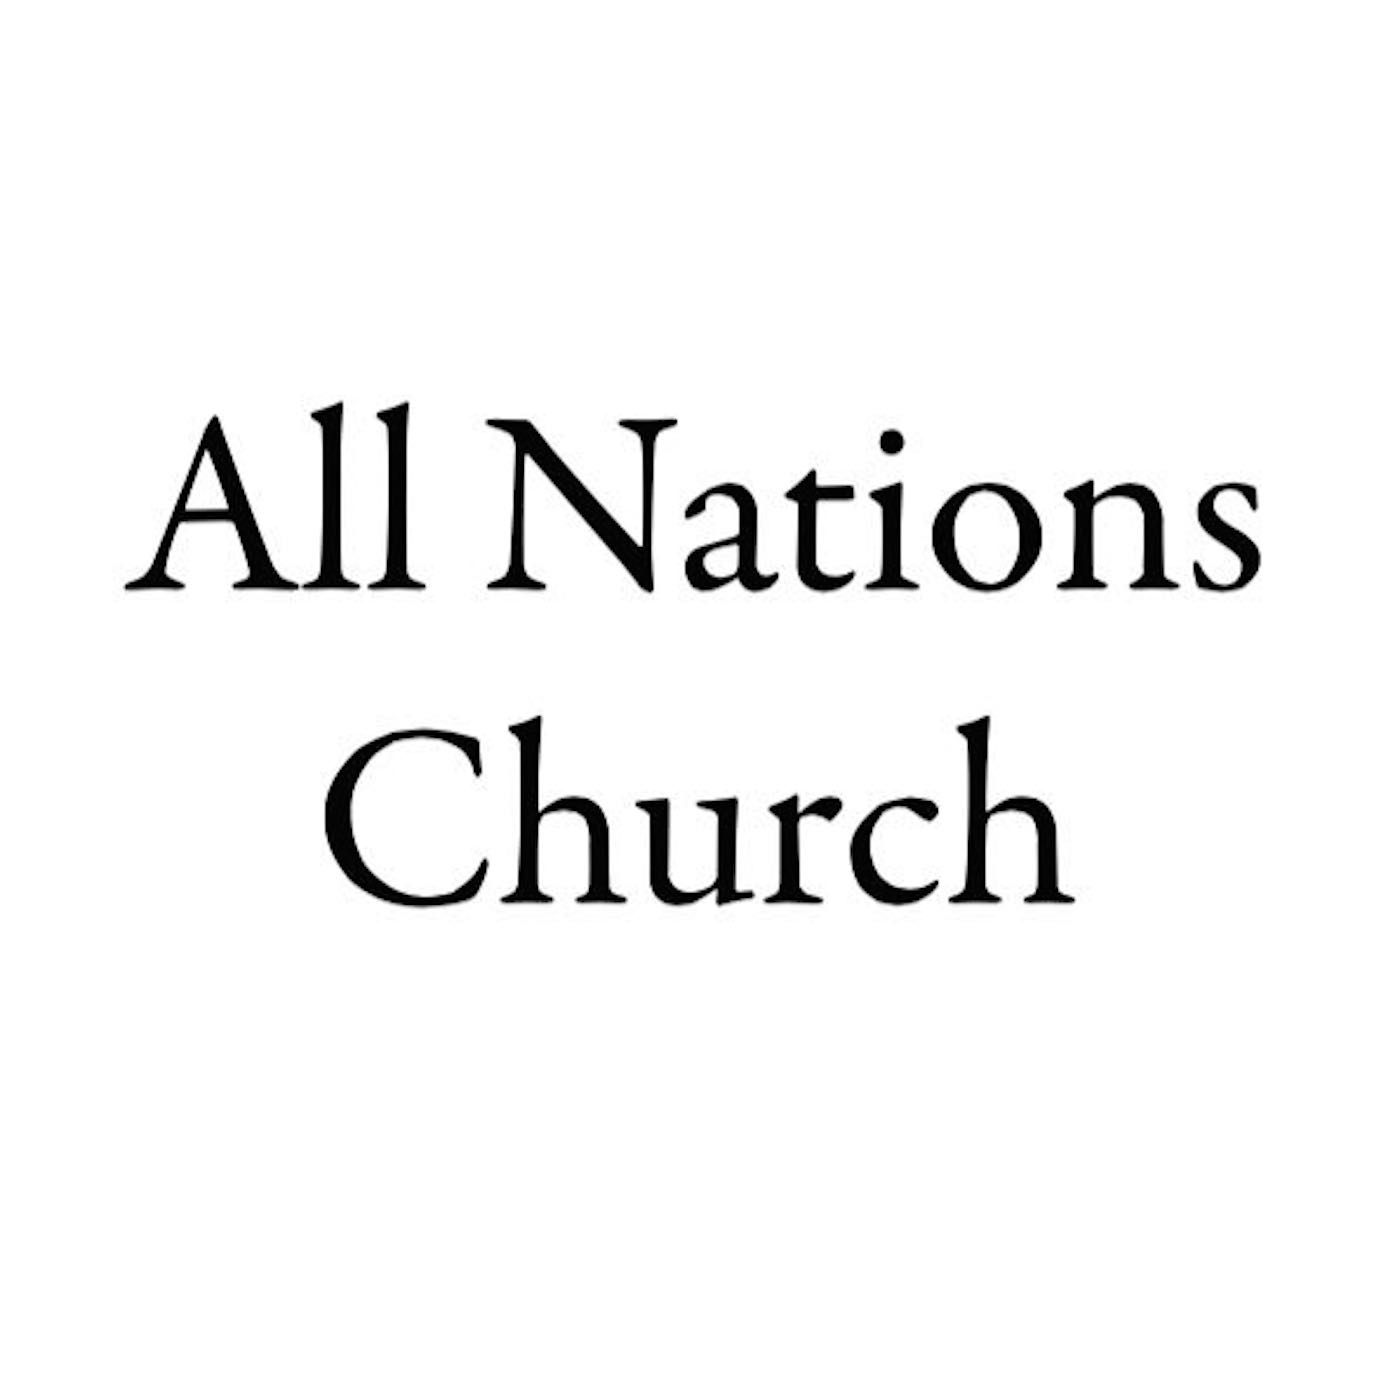 Listen - All Nations Church